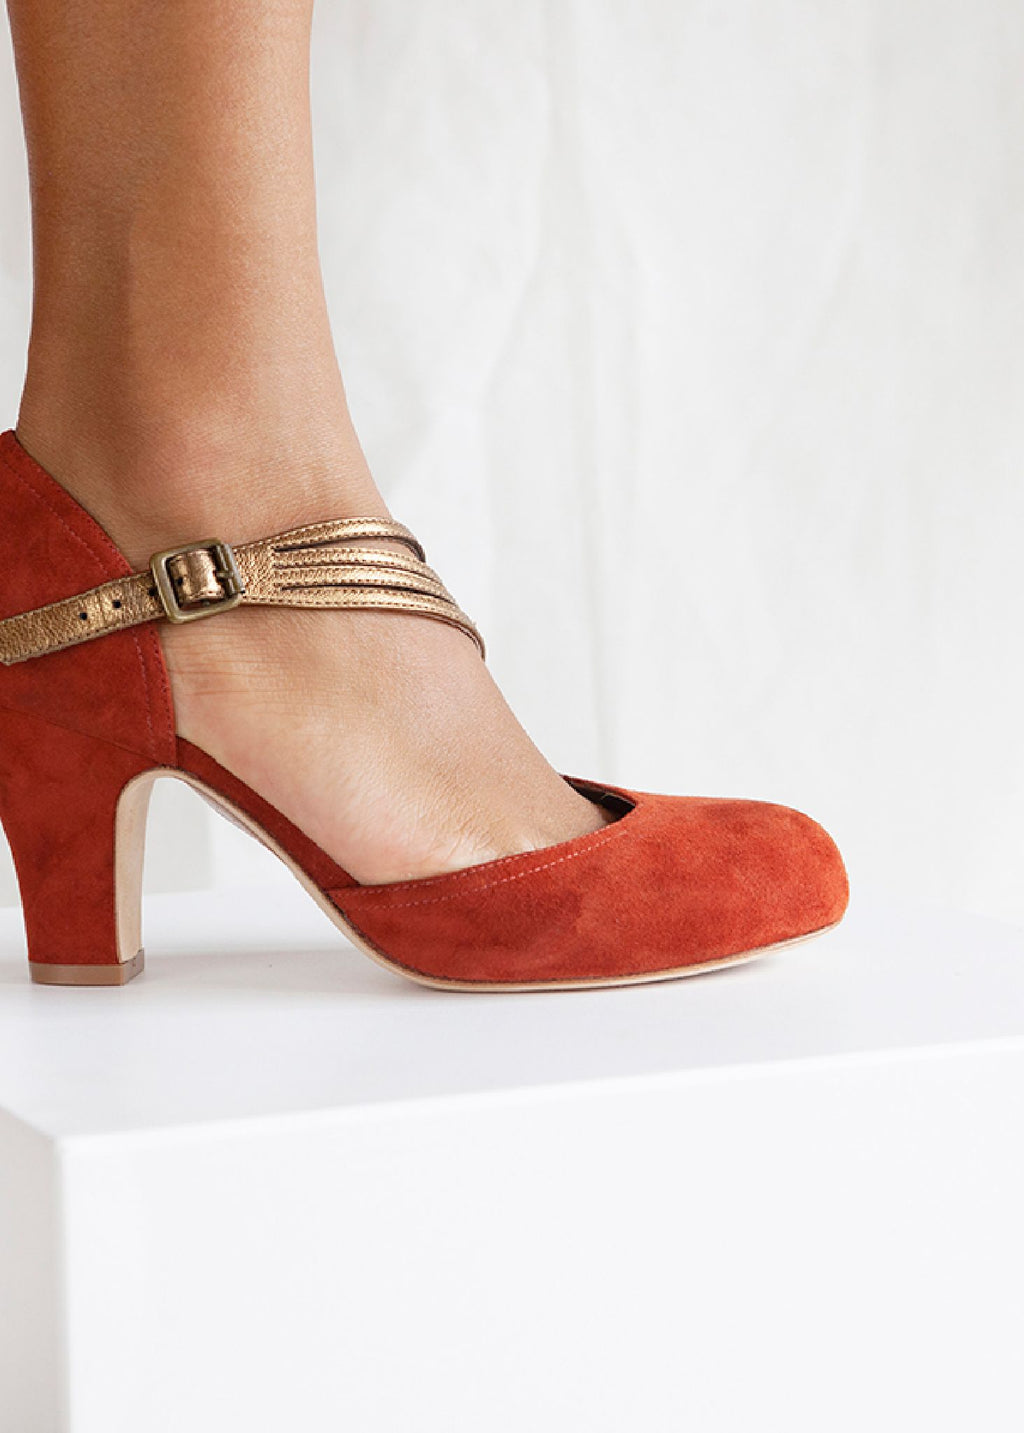 Lana Rust Suede D'orsay Cut Pump With Asymmetric Bronze Strap- LAST FEW PAIRS!